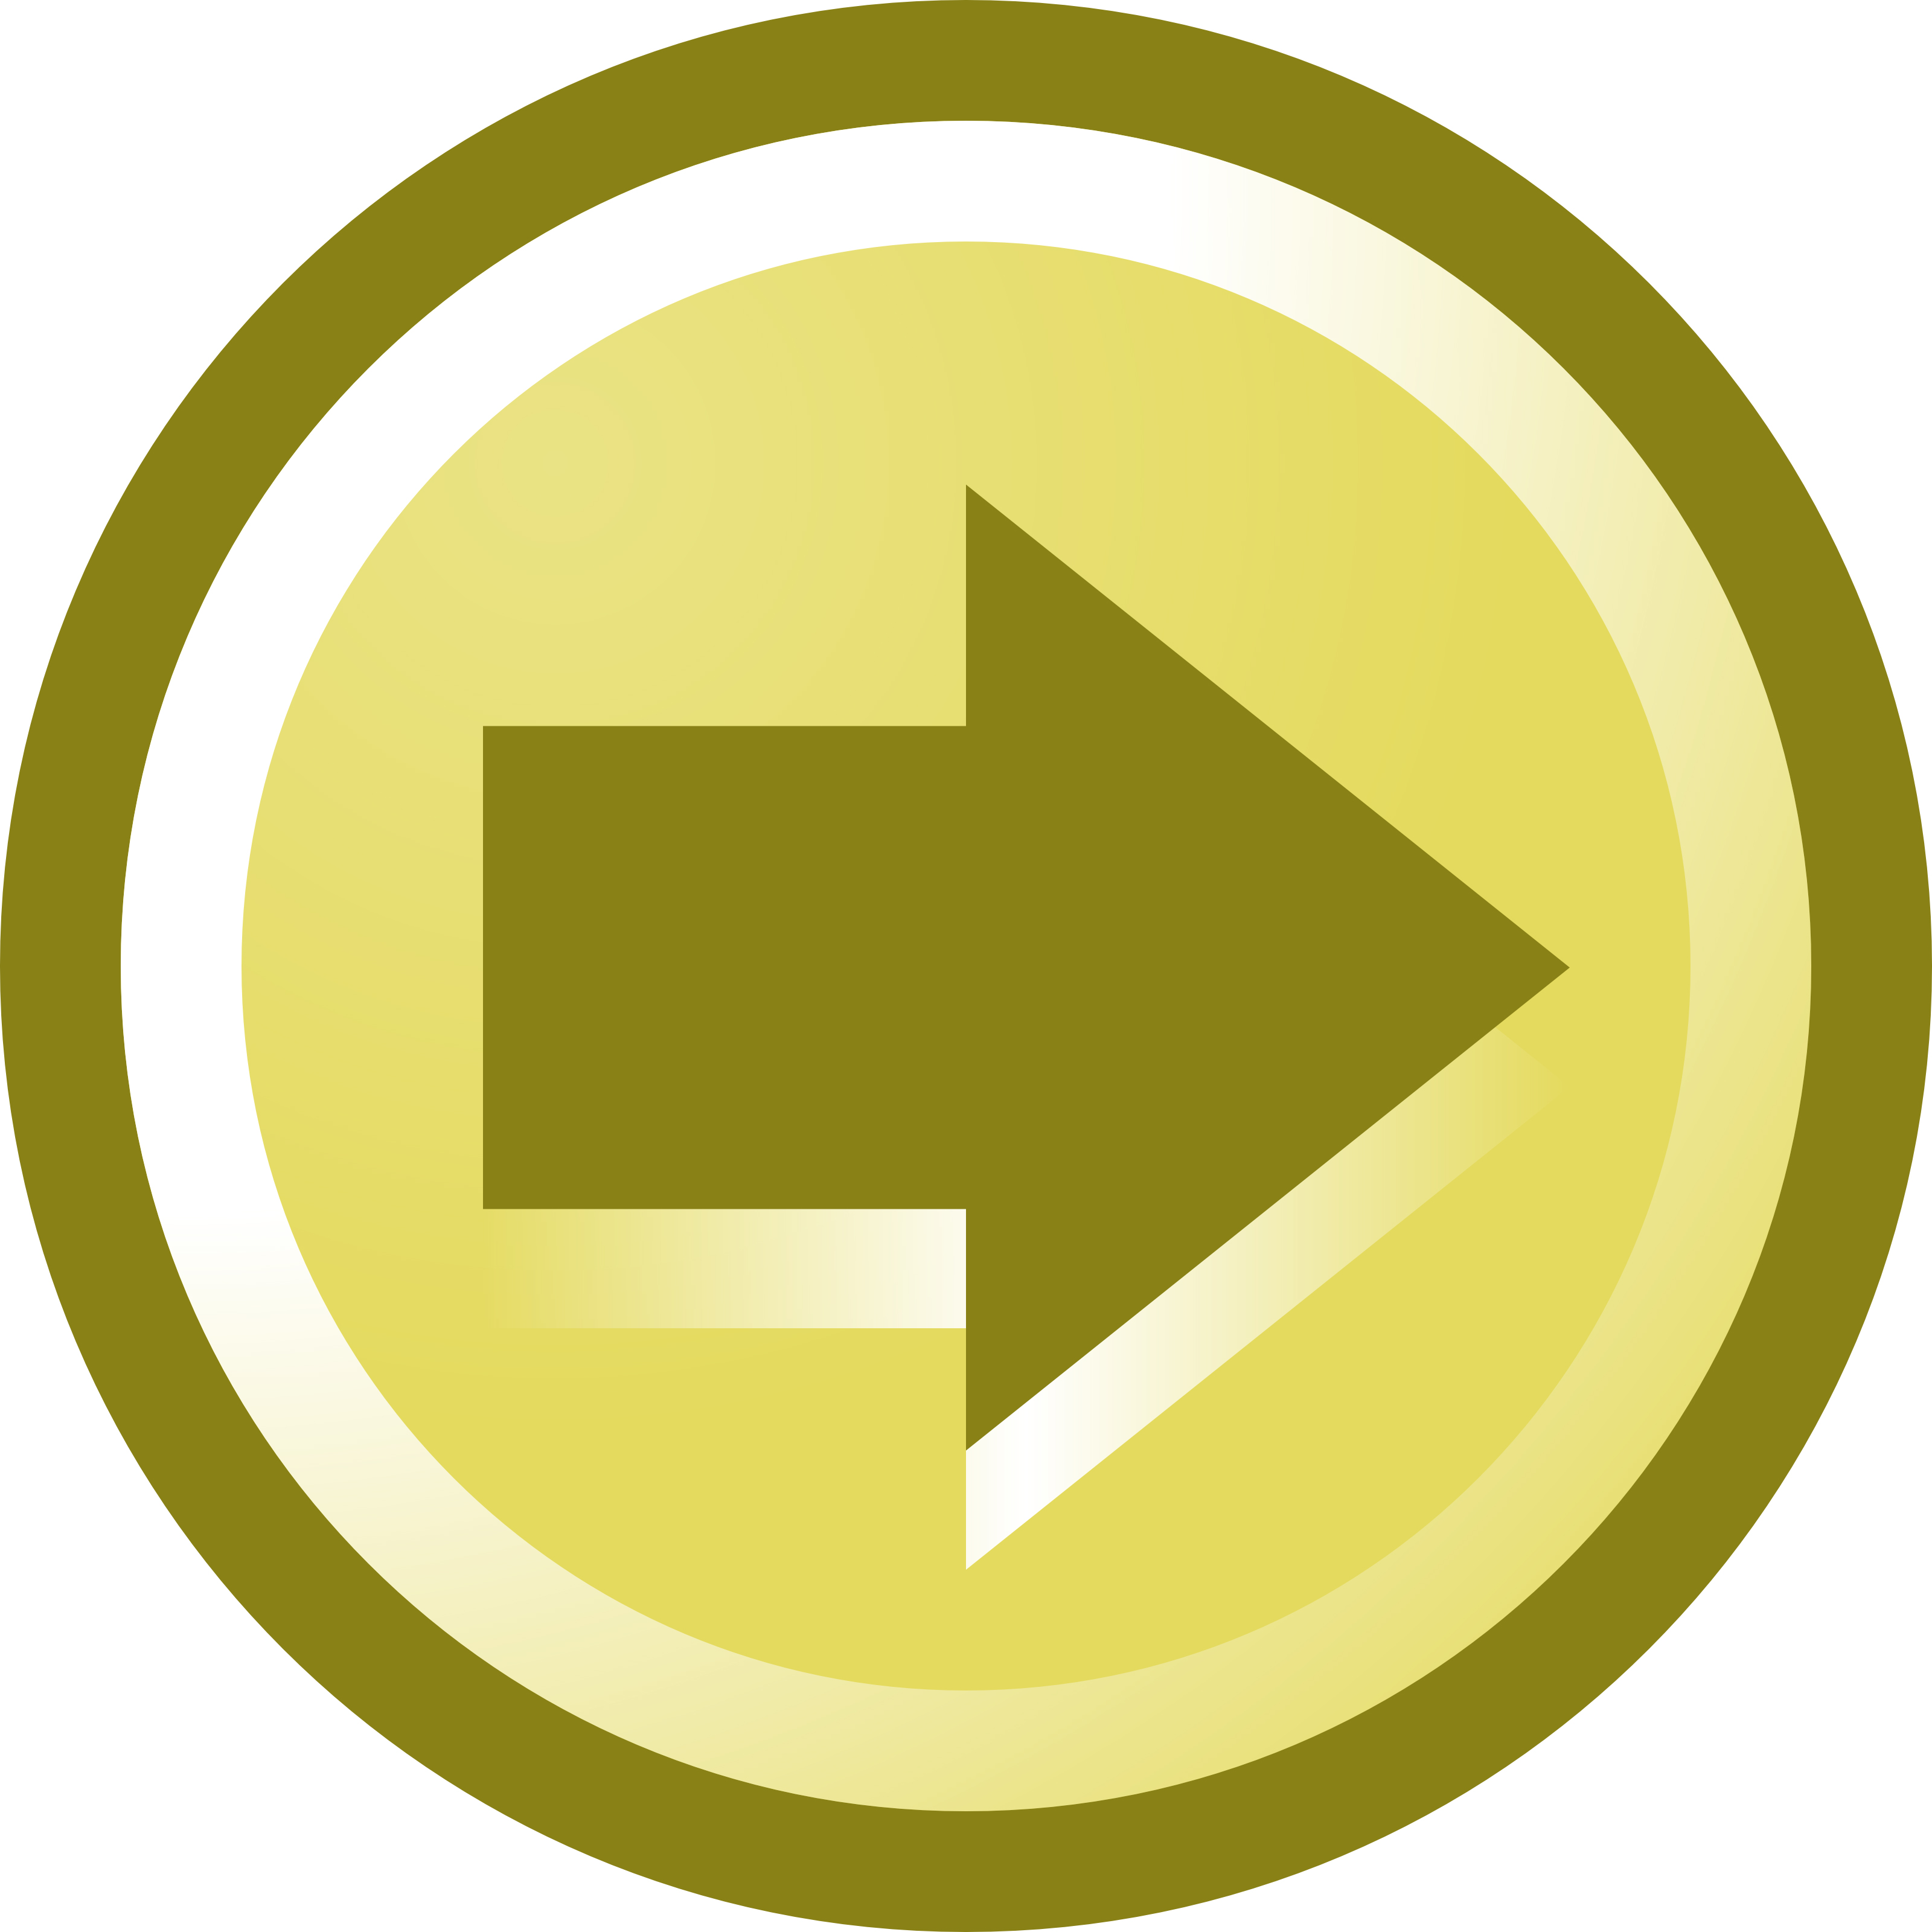 Free Vector Illustration Of A Right Arrow Icon